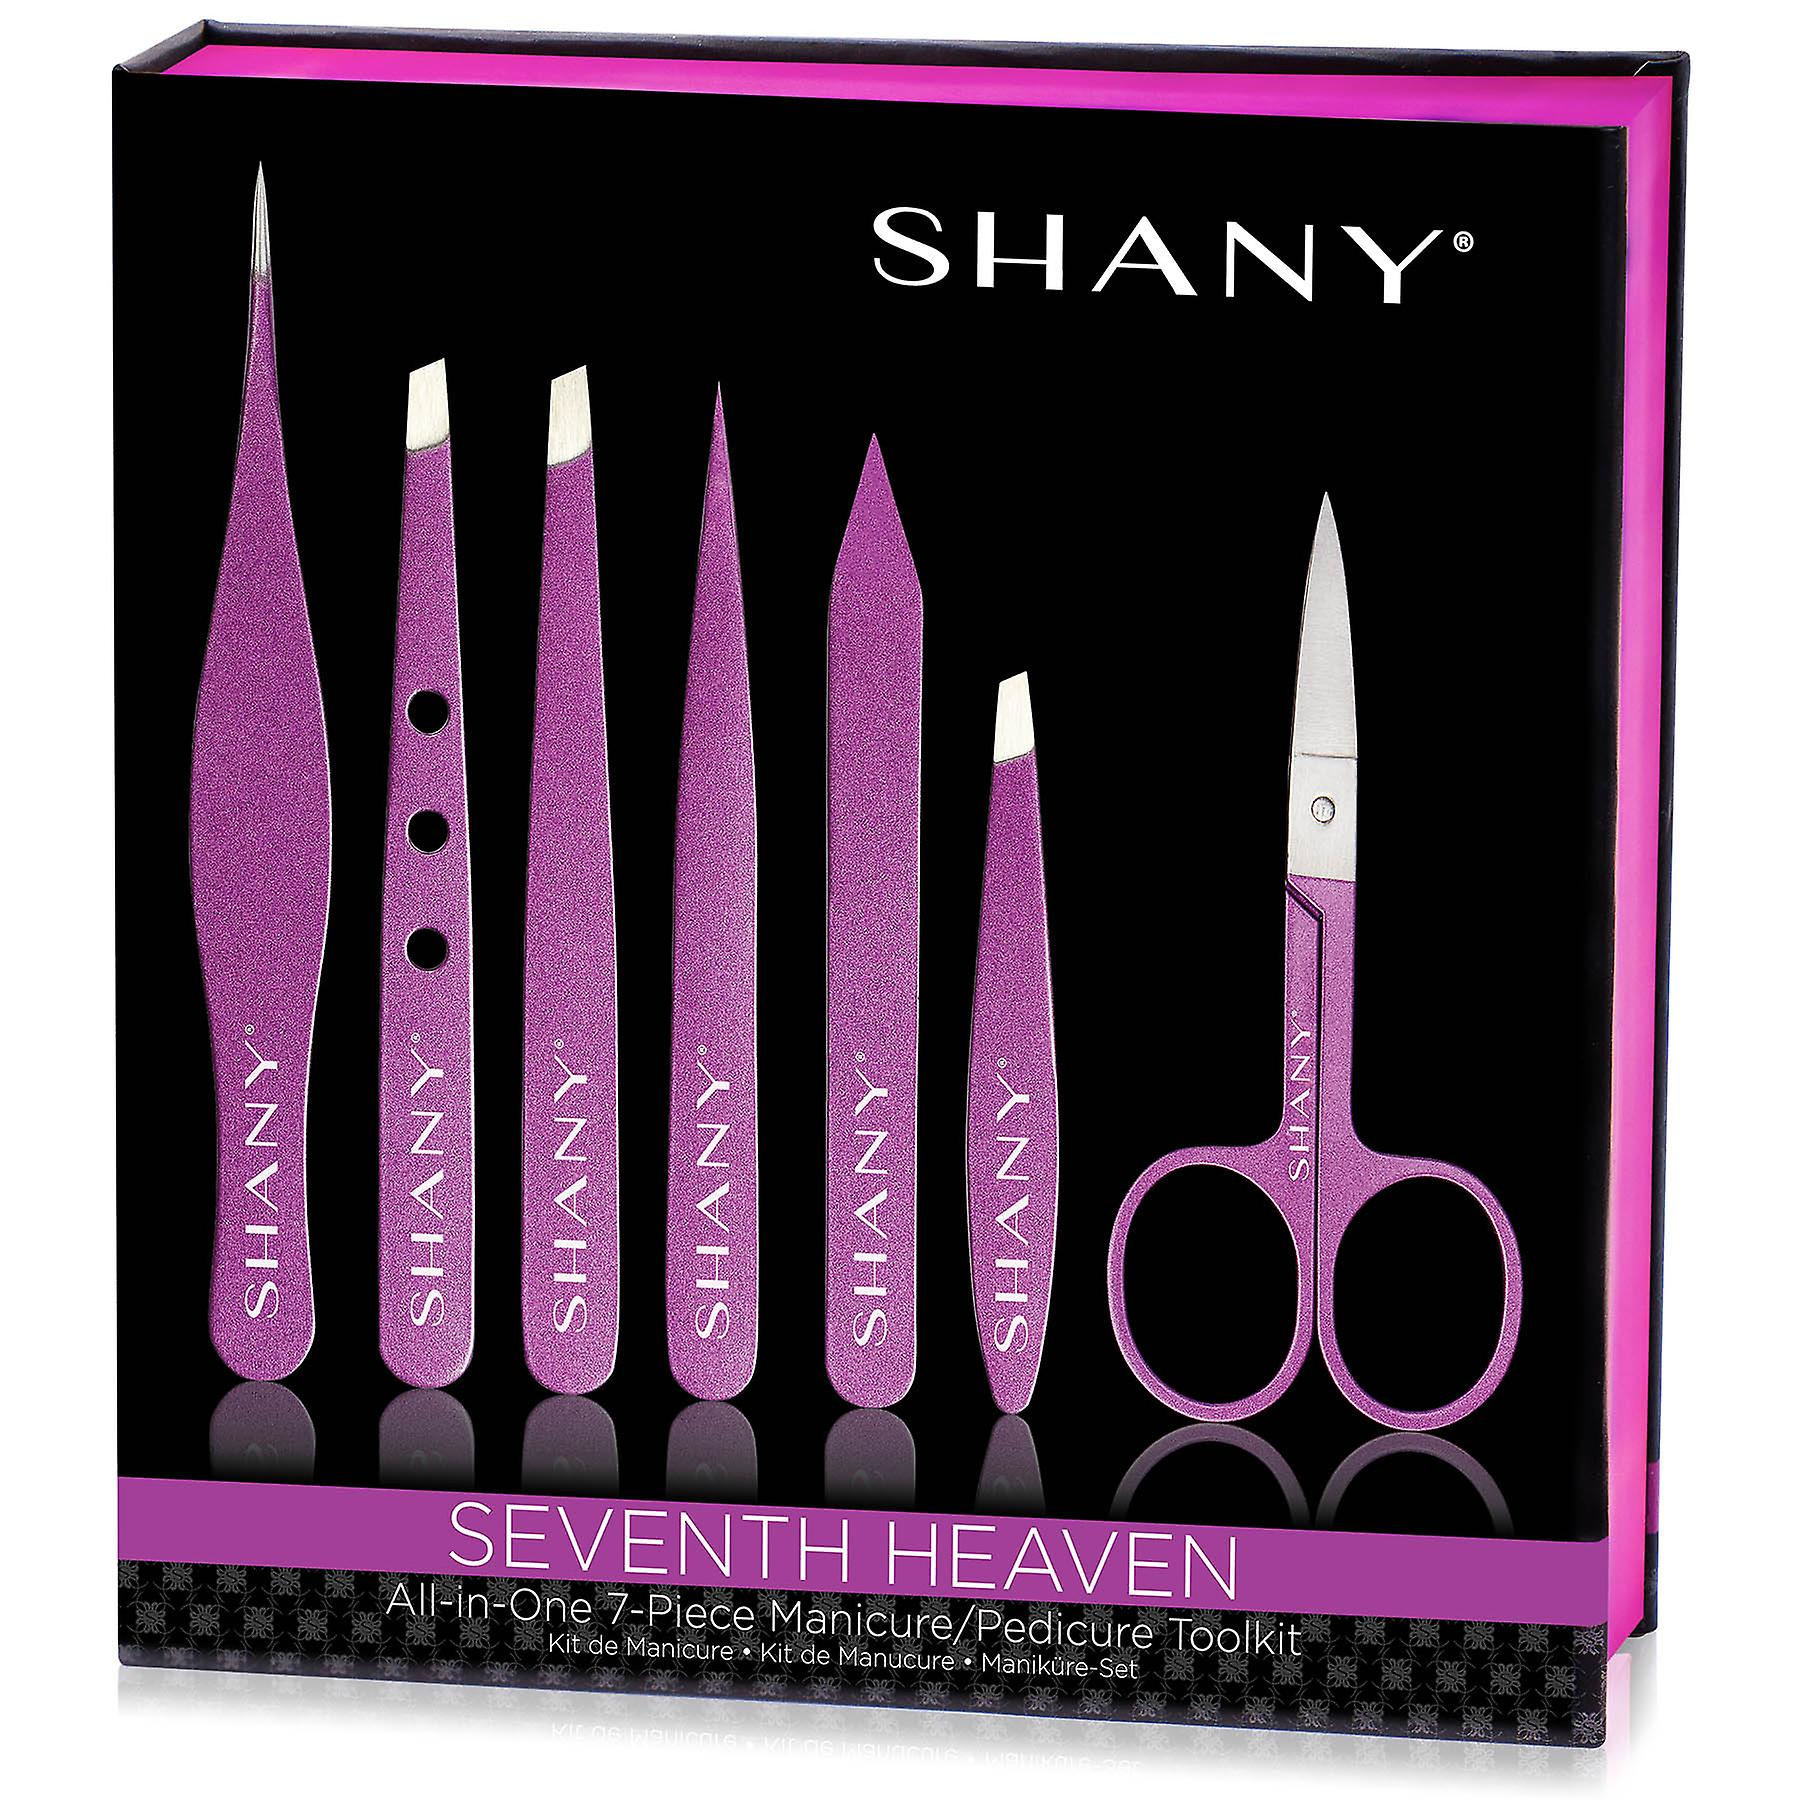 SHANY Seventh Heaven Professional Manicure, Pedicure and Tweezer Set - All-in-One 7-Piece Portable Nail Grooming Tool Kit - PURPLE